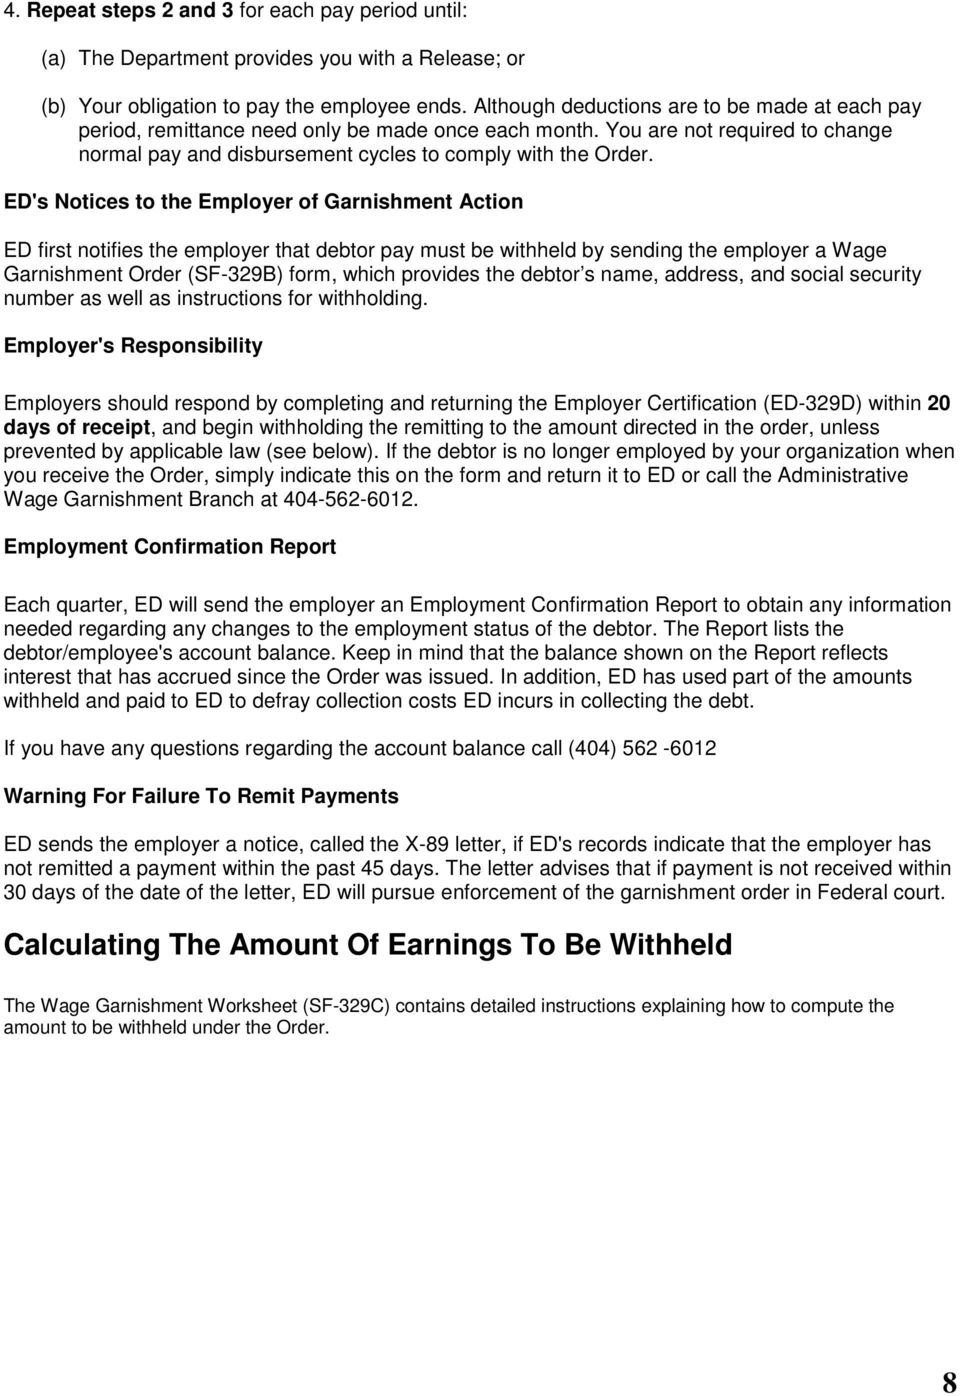 ED's Notices to the Employer of Garnishment Action ED first notifies the employer that debtor pay must be withheld by sending the employer a Wage Garnishment Order (SF-329B) form, which provides the